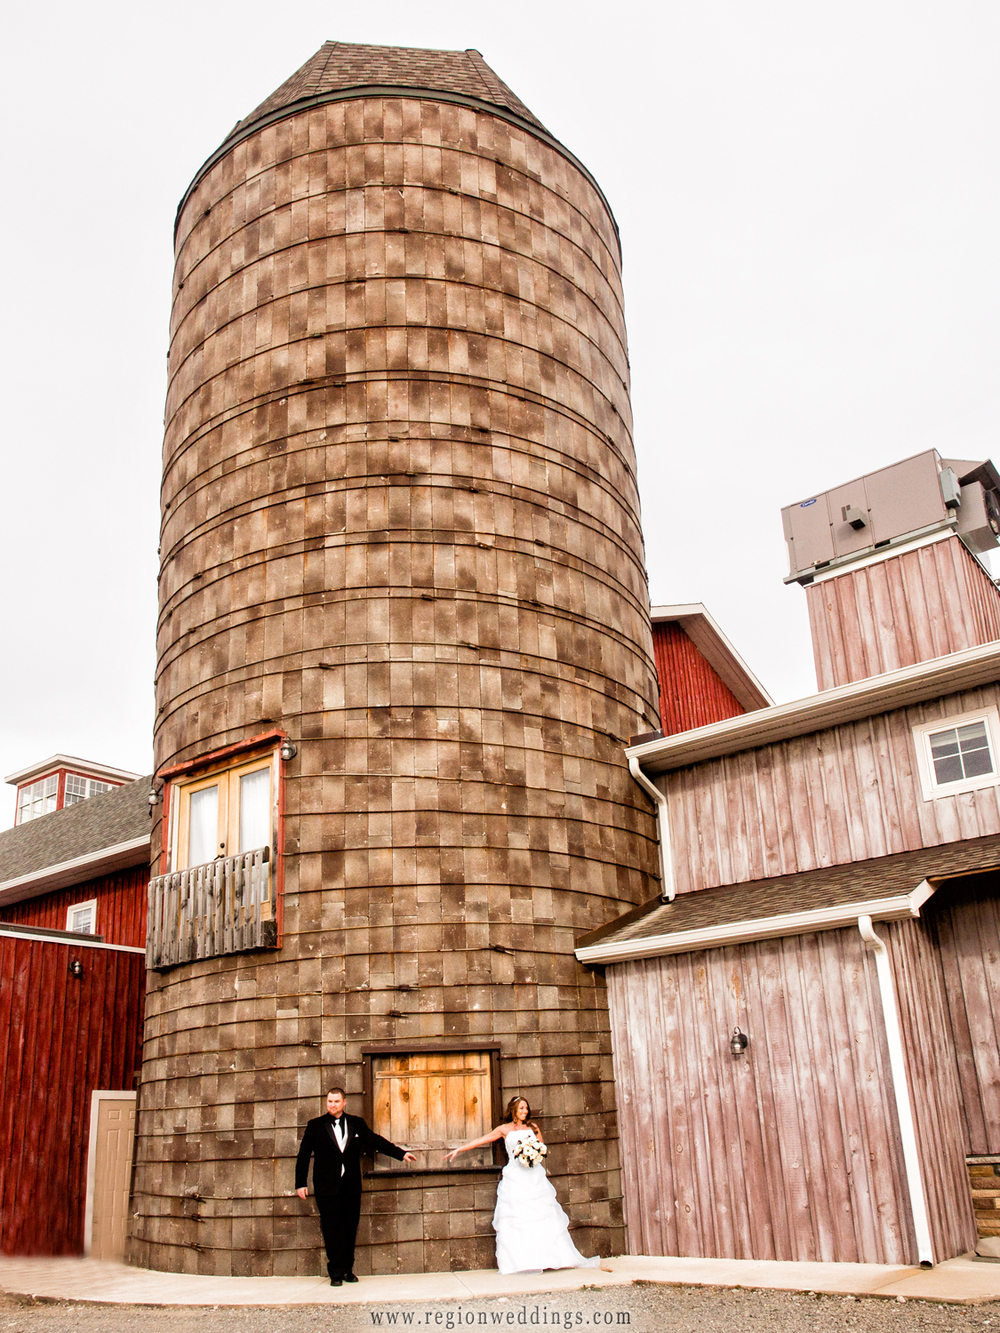 A bride and groom take their first look underneath the silo at County Line Orchard.